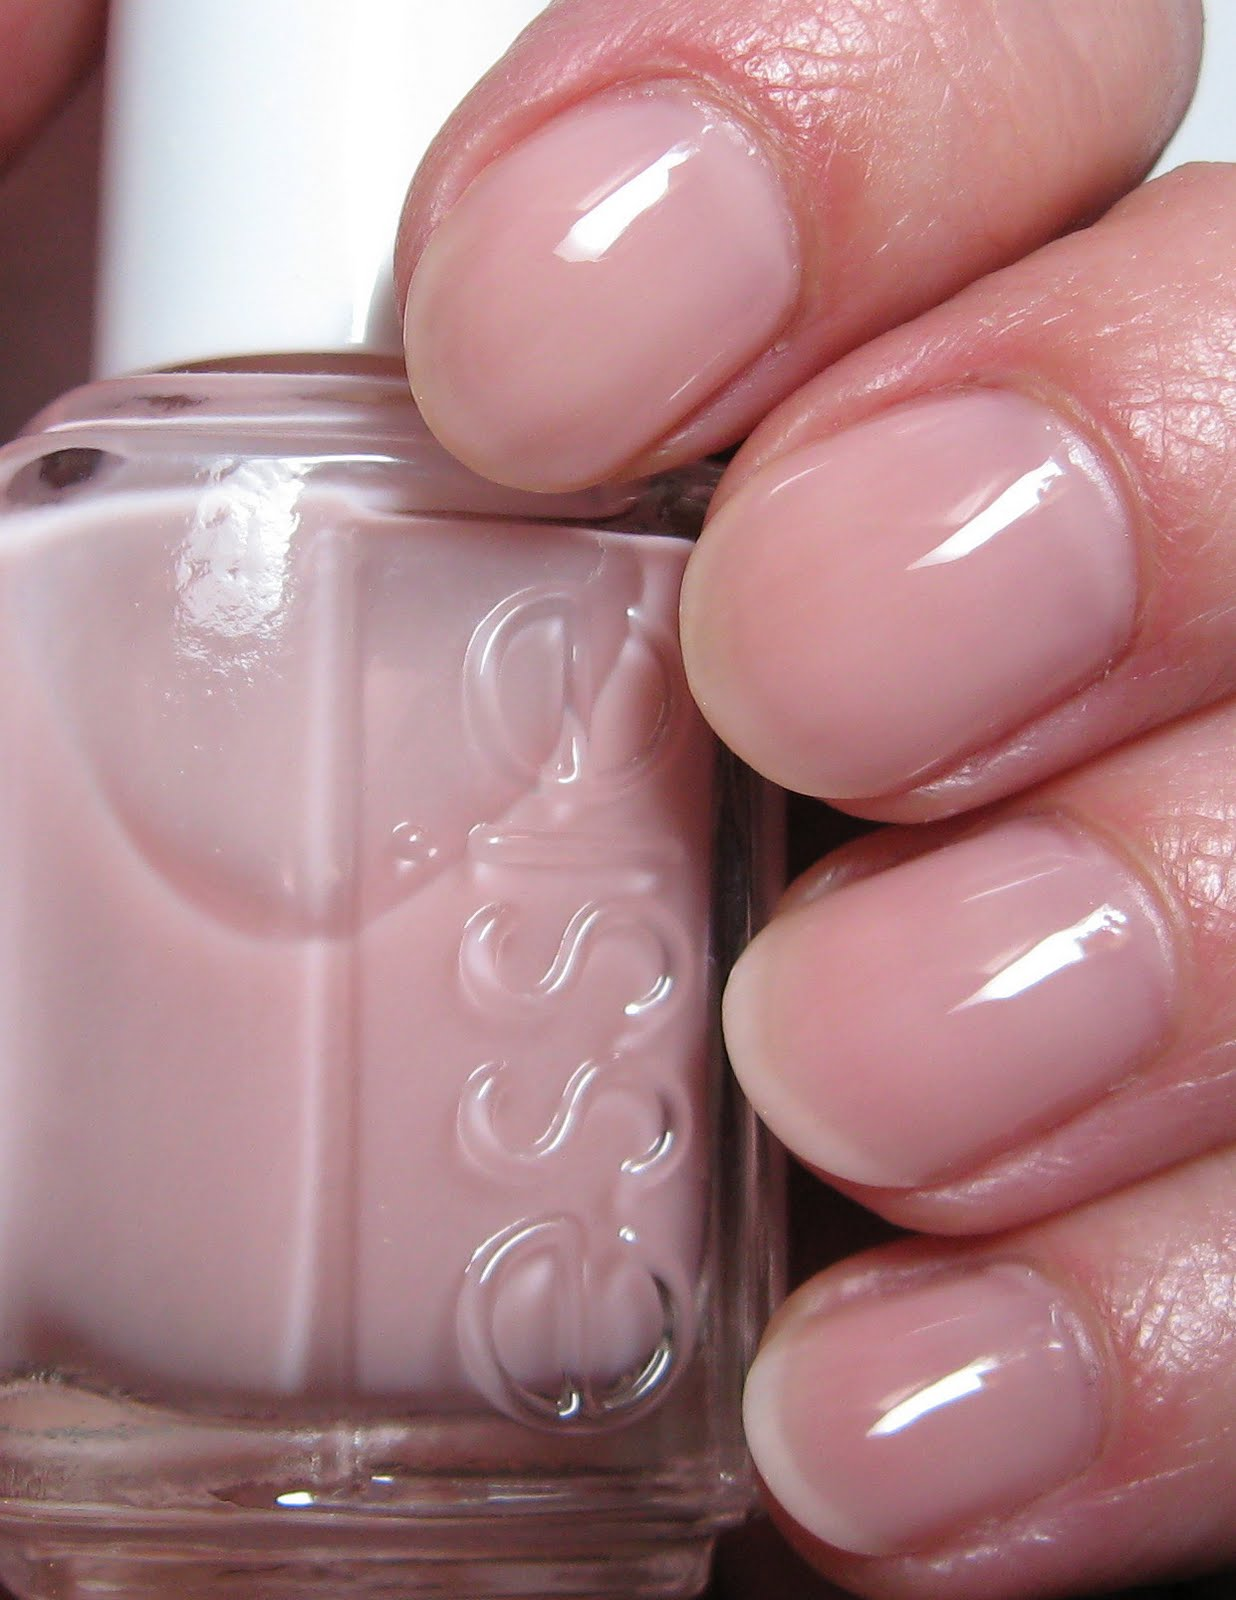 Essie 2010 Wedding Color Collection: Part II | Body & Soul